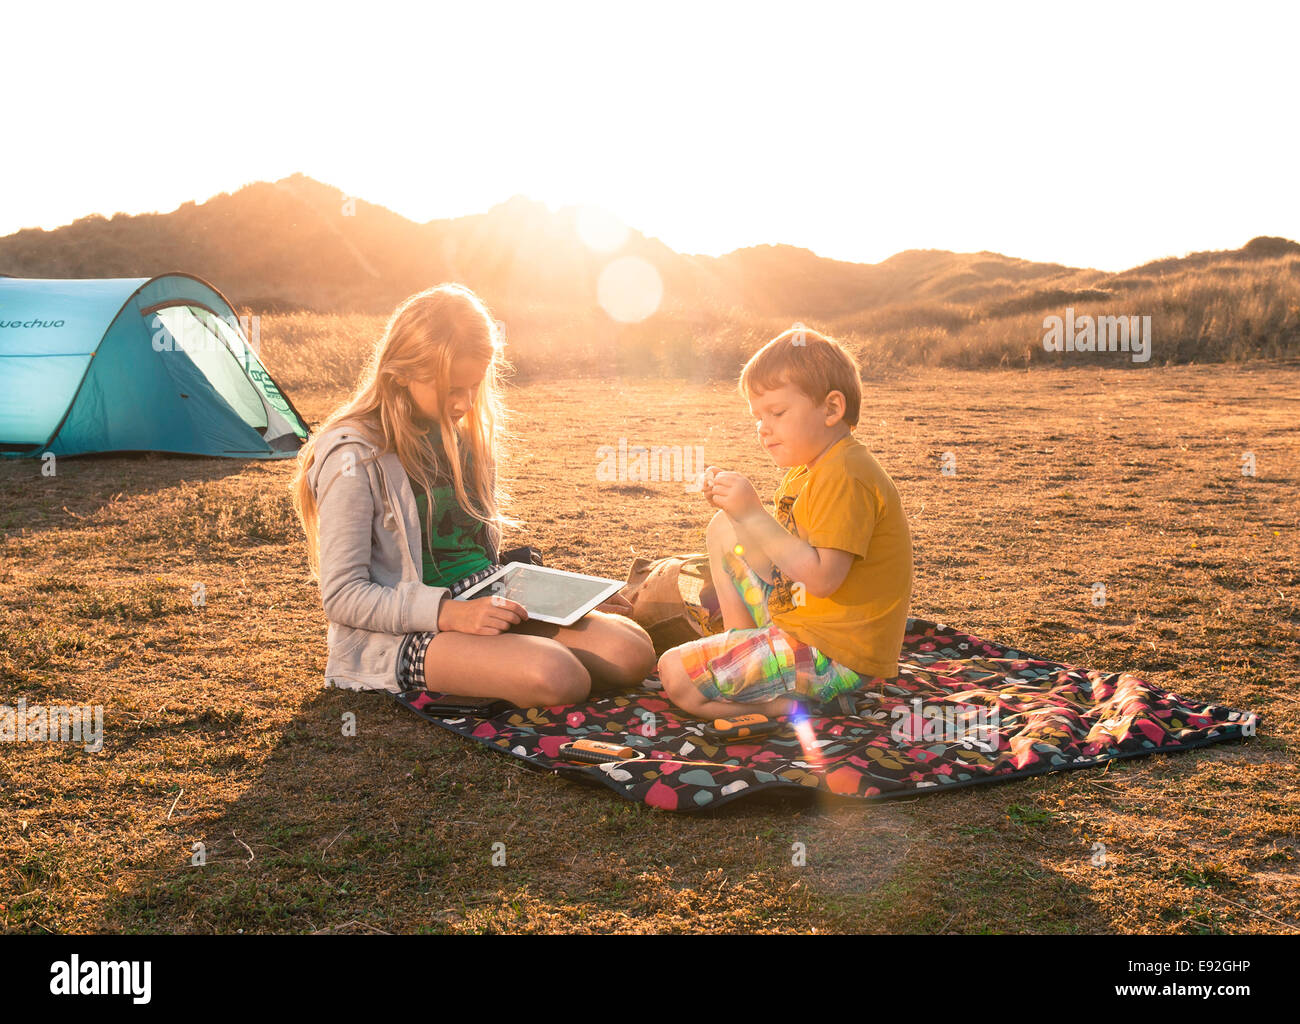 Children camping on picnic blanket with ipad in summer. Brother and sister camp holiday in UK England sand dunes - Stock Image